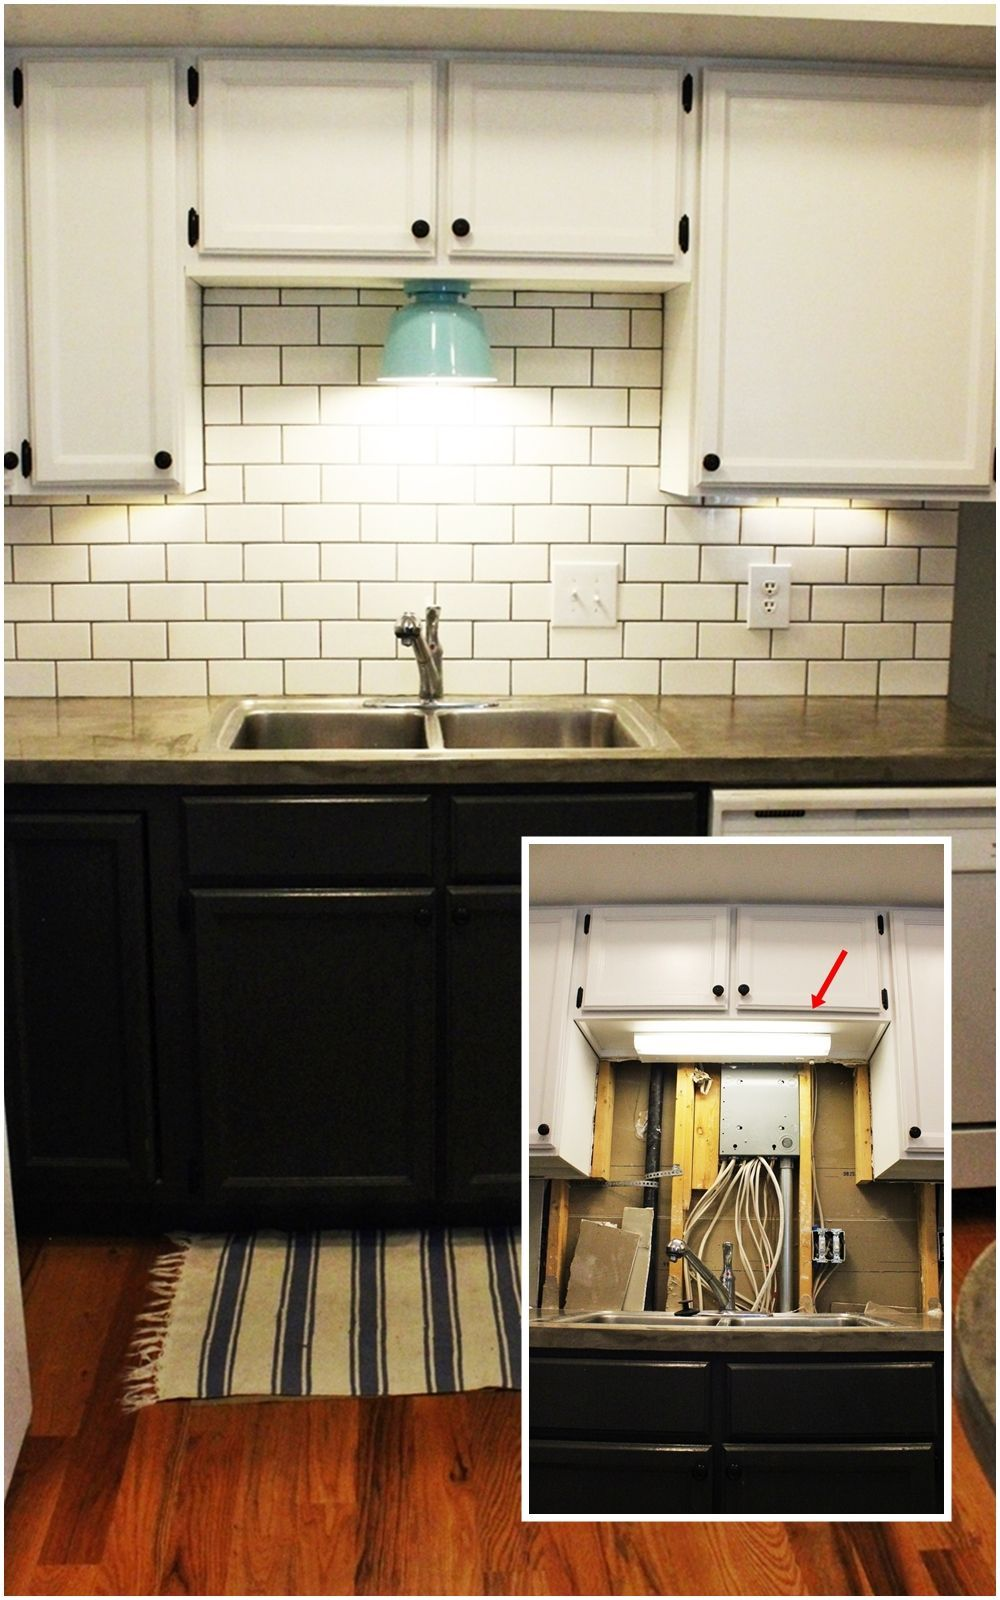 above sink lighting. DIY Kitchen Lighting Upgrade: LED Under-Cabinet Lights \u0026 Above-the-Sink Light Above Sink Homedit